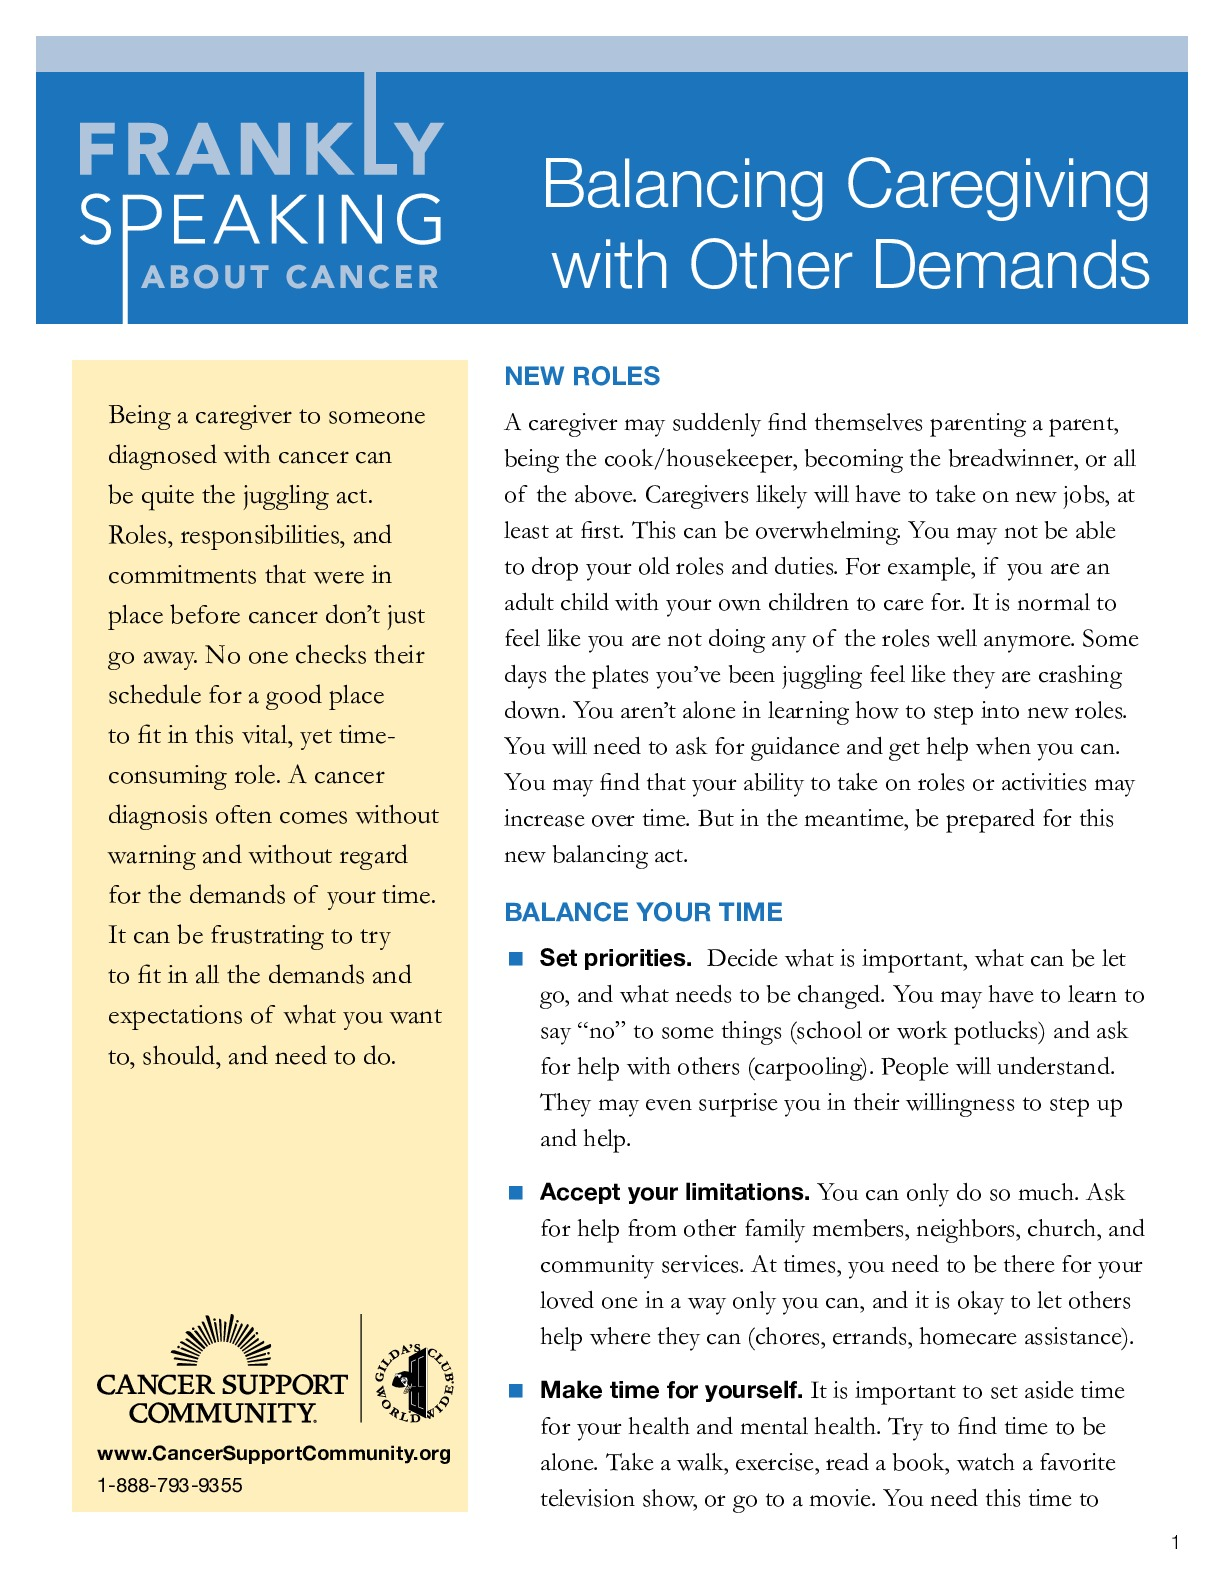 Balancing Caregiving with Other Demands